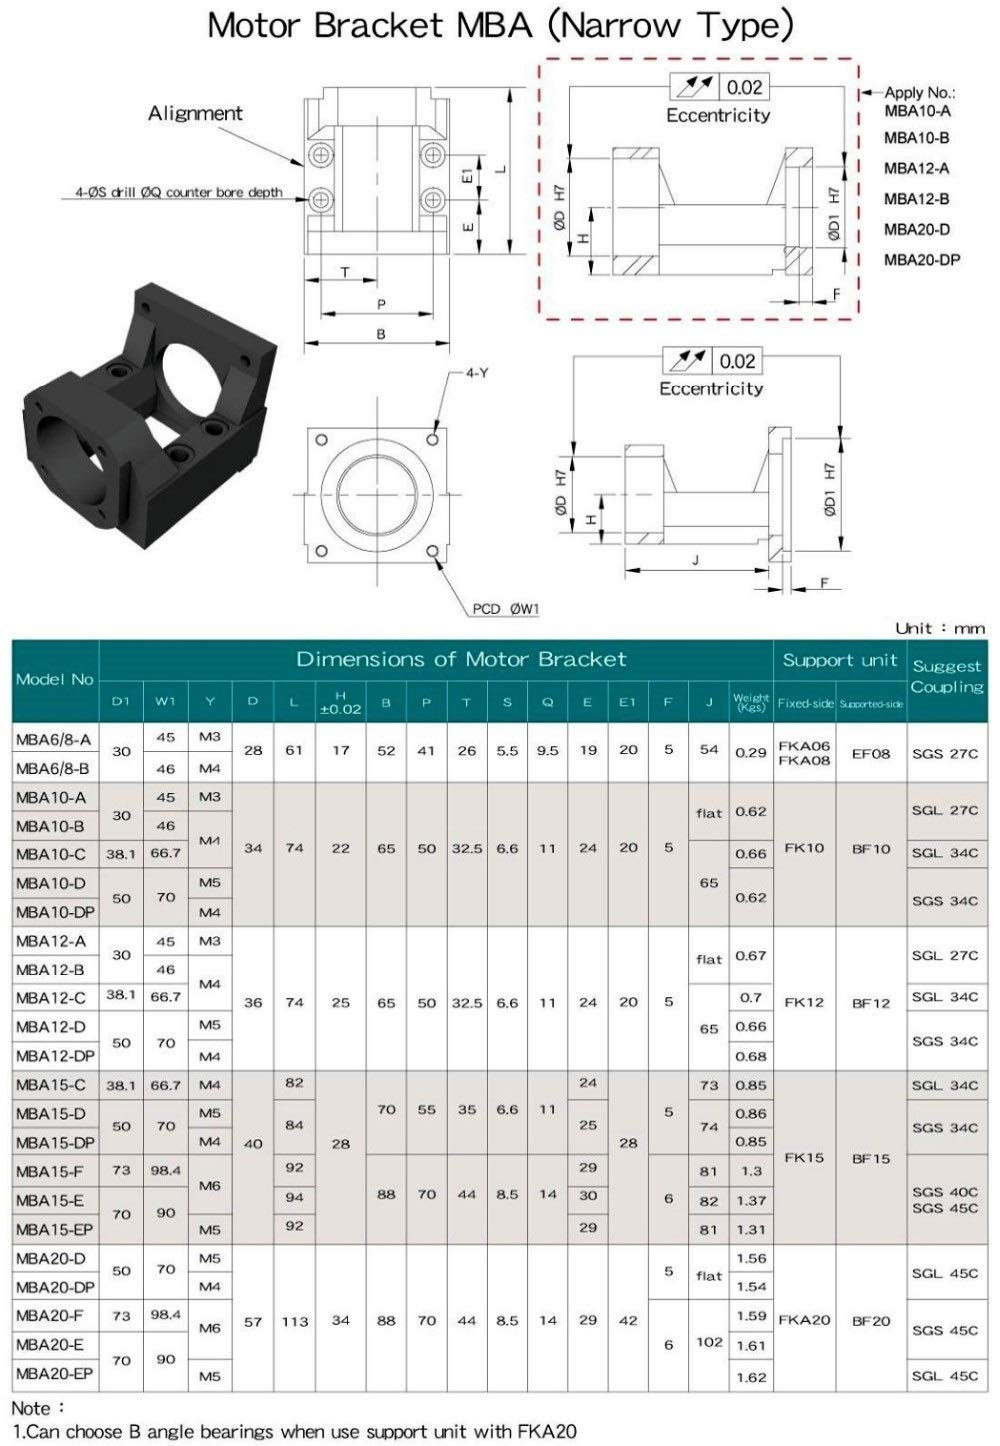 Ochoos Motor Bracket MBA type MBA6-A/B/MBA8-A/B/MBA10-A/B/C/D/DP/MBA12-A/B/C/D/DP suitable for ball screw 1204/1604/1605/1610 diameter - (Size: MBA12-D)